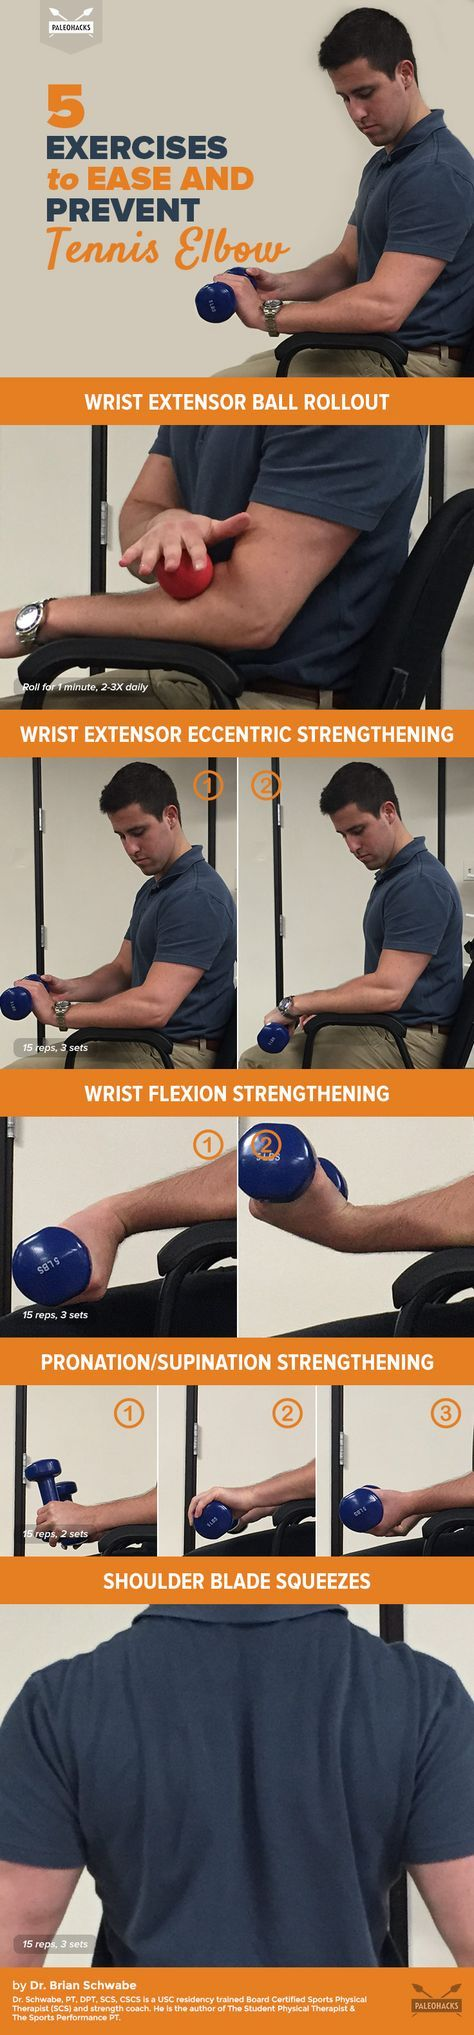 What kind of therapy do you need for tennis elbow?